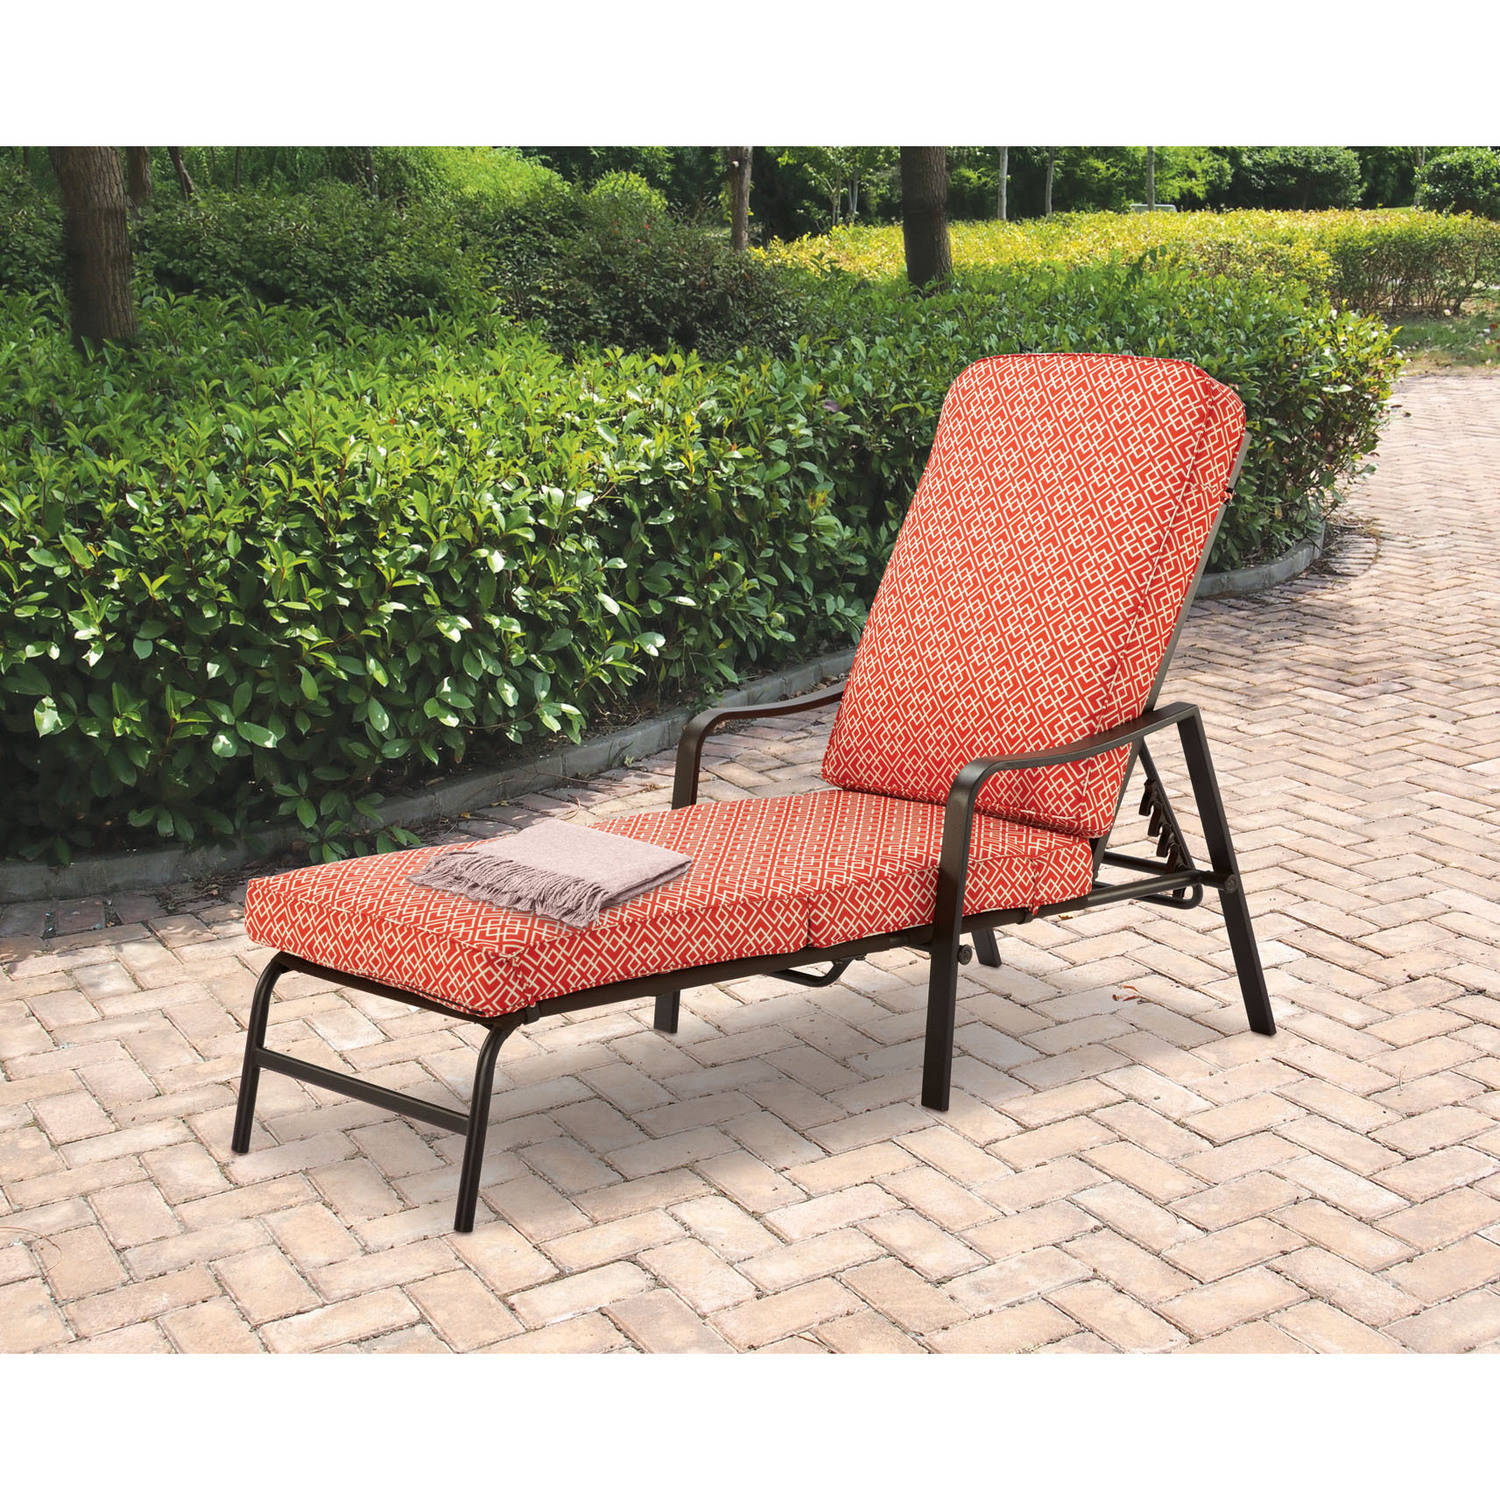 Mainstays Outdoor Chaise Lounge, Orange Geo Pattern